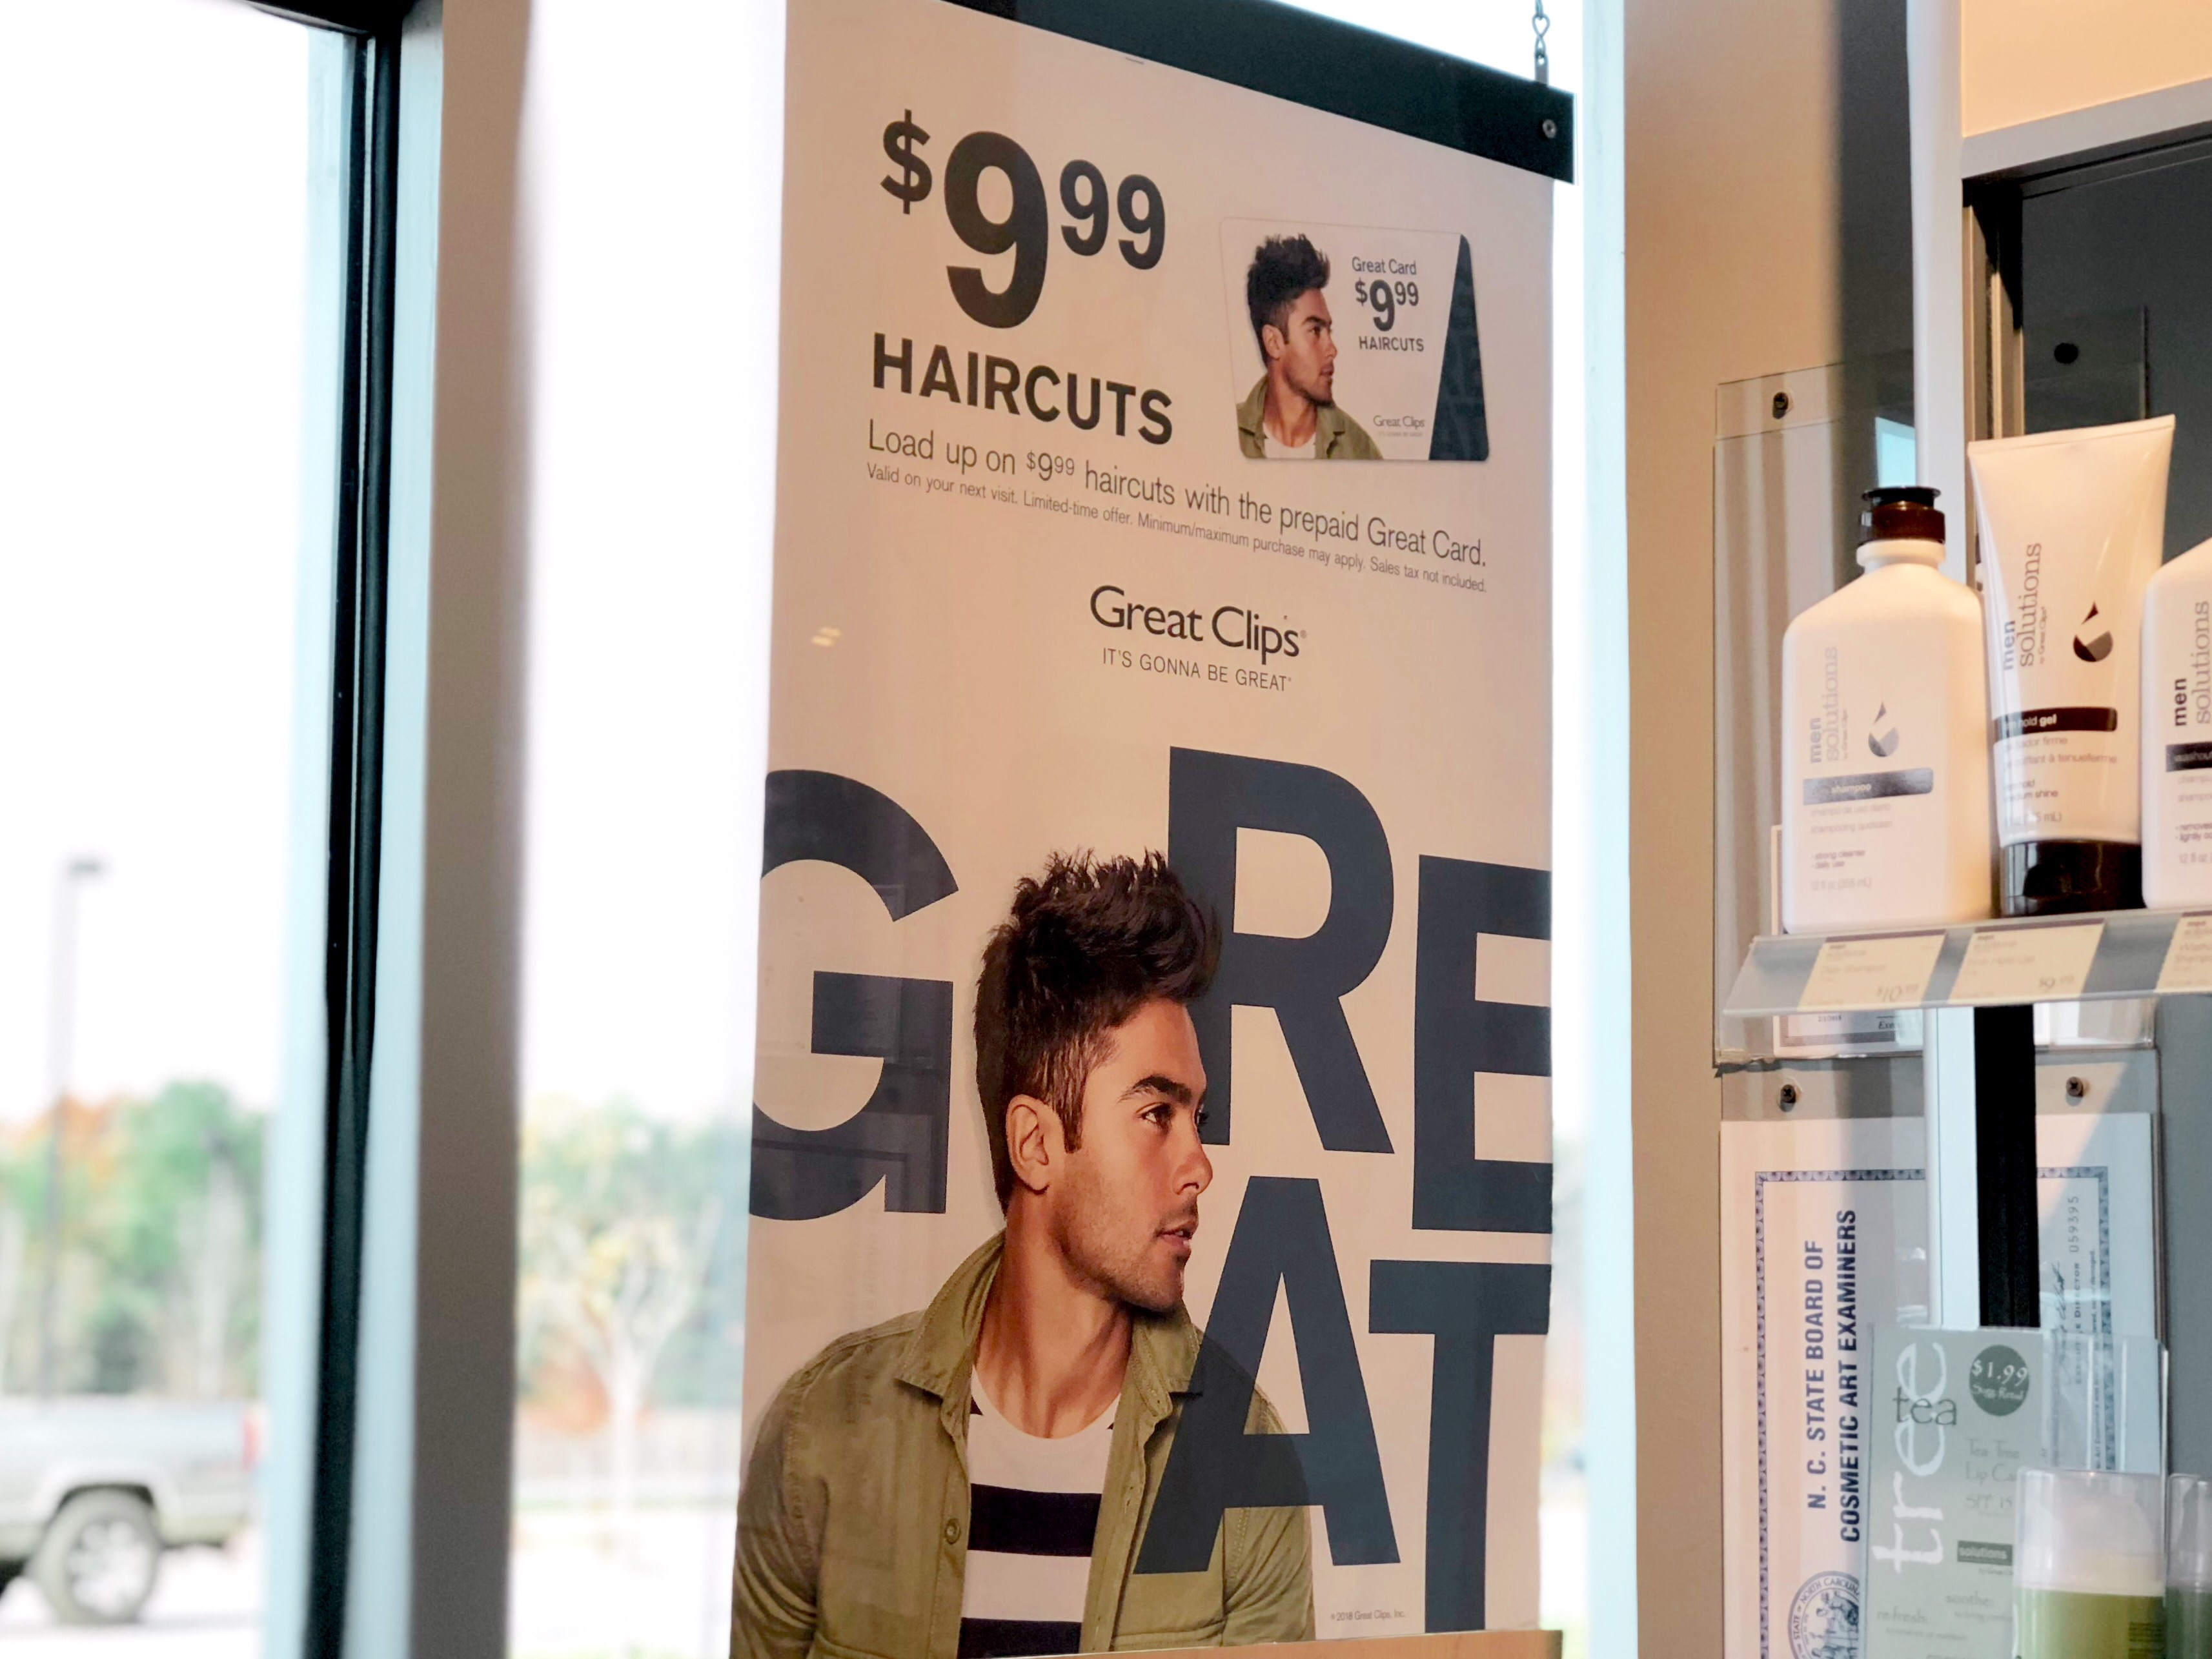 Great Clips Great Card 9 99 Haircuts Hip2save